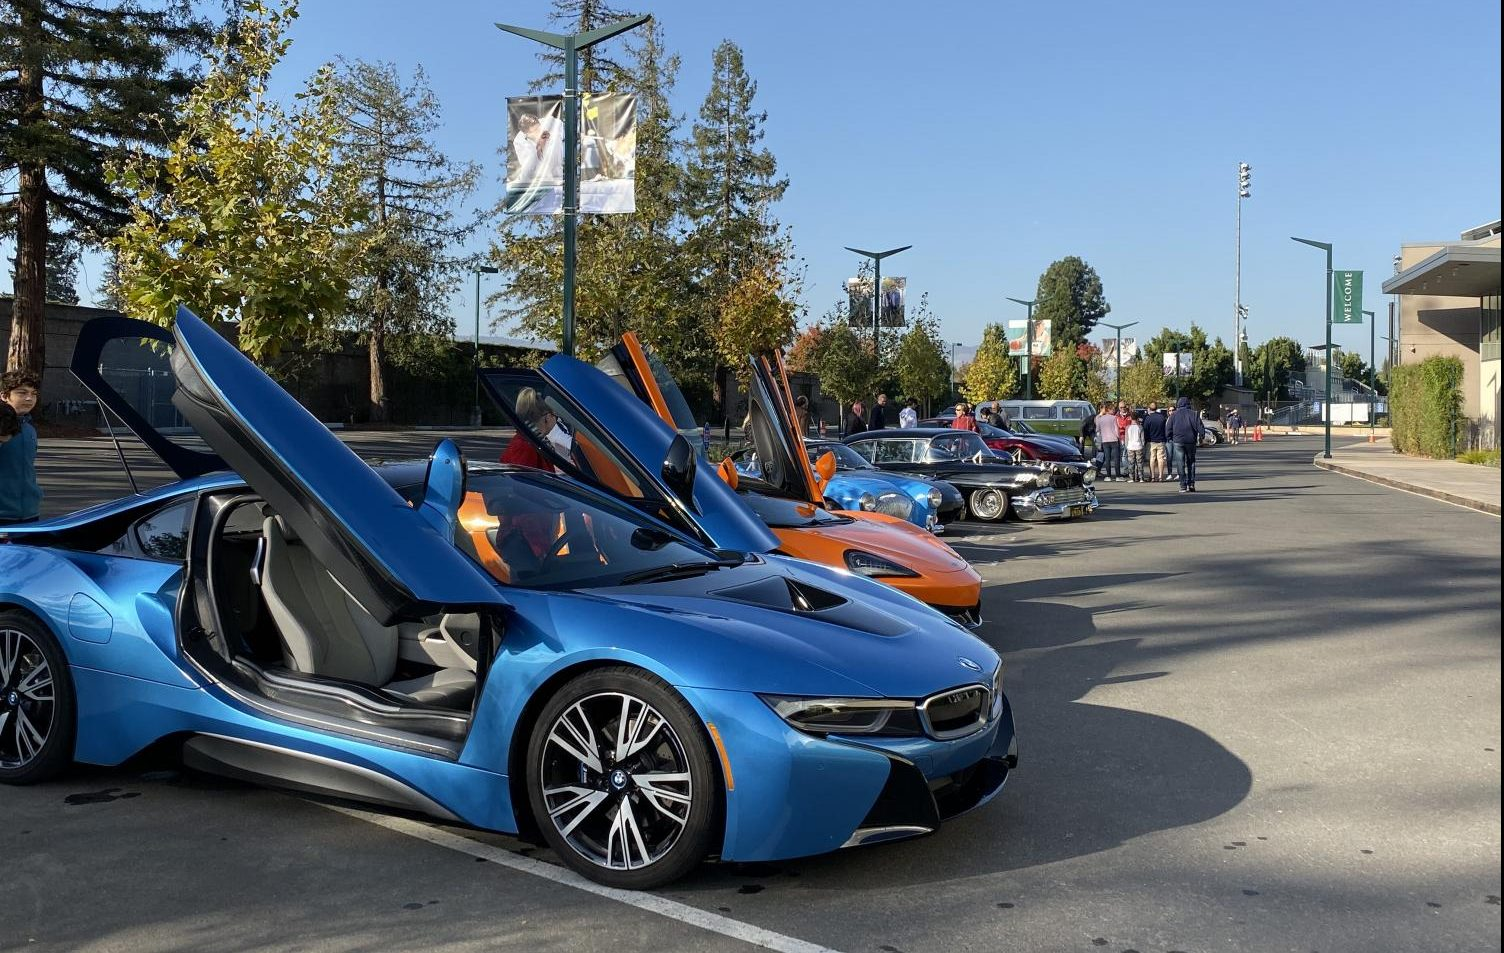 Sports cars such as the BMW i8 line up at the upper school Car Club's first ever car show, which was held in the Saratoga campus parking lot on Nov. 23. Members of the Harker community were invited to drive in their cars to showcase.